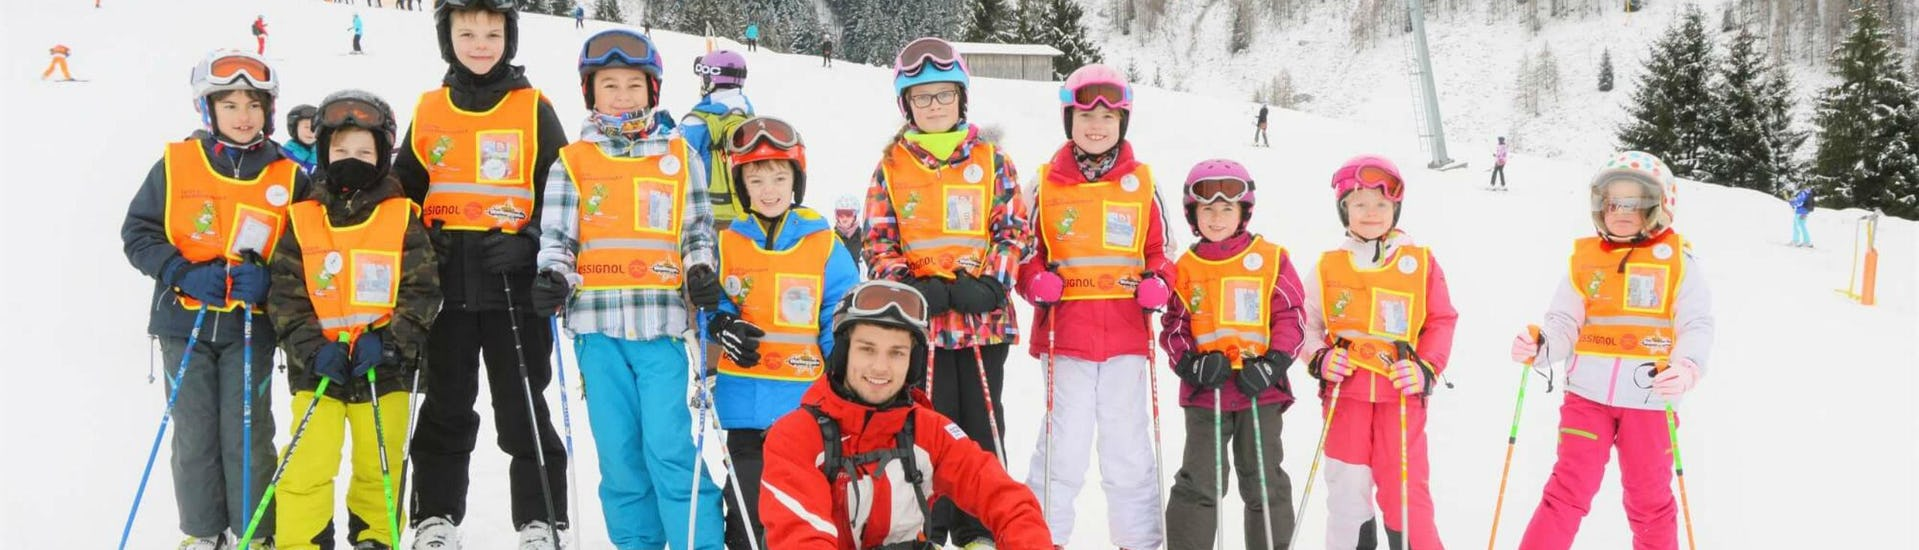 """A group of children and their ski instructor from S4 Snowsport Fieberbrunn are smiling at the camera during their Kids Ski Lessons """"Tatzis Skicircus"""" (3-14 years)."""